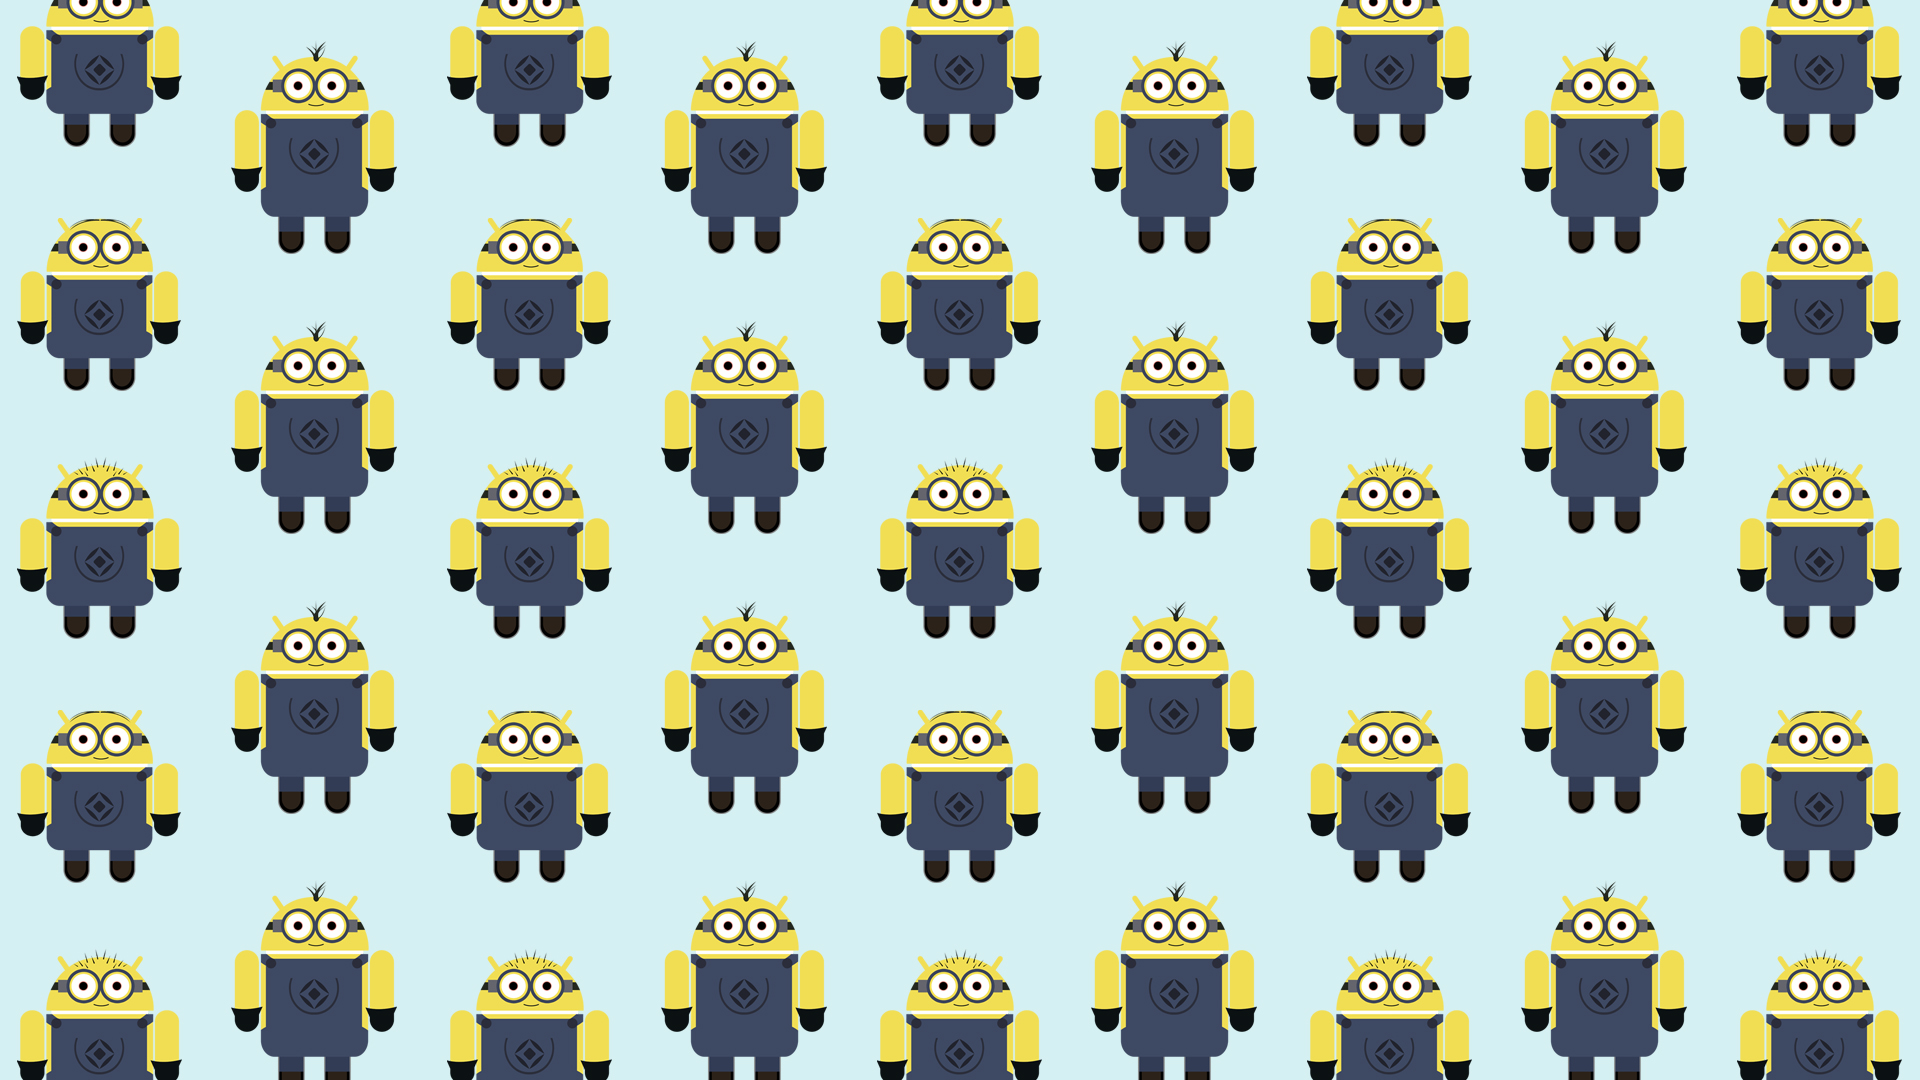 Funny-minions-mobile-android-hd-×-Minions-wallpaper-wpc5805268